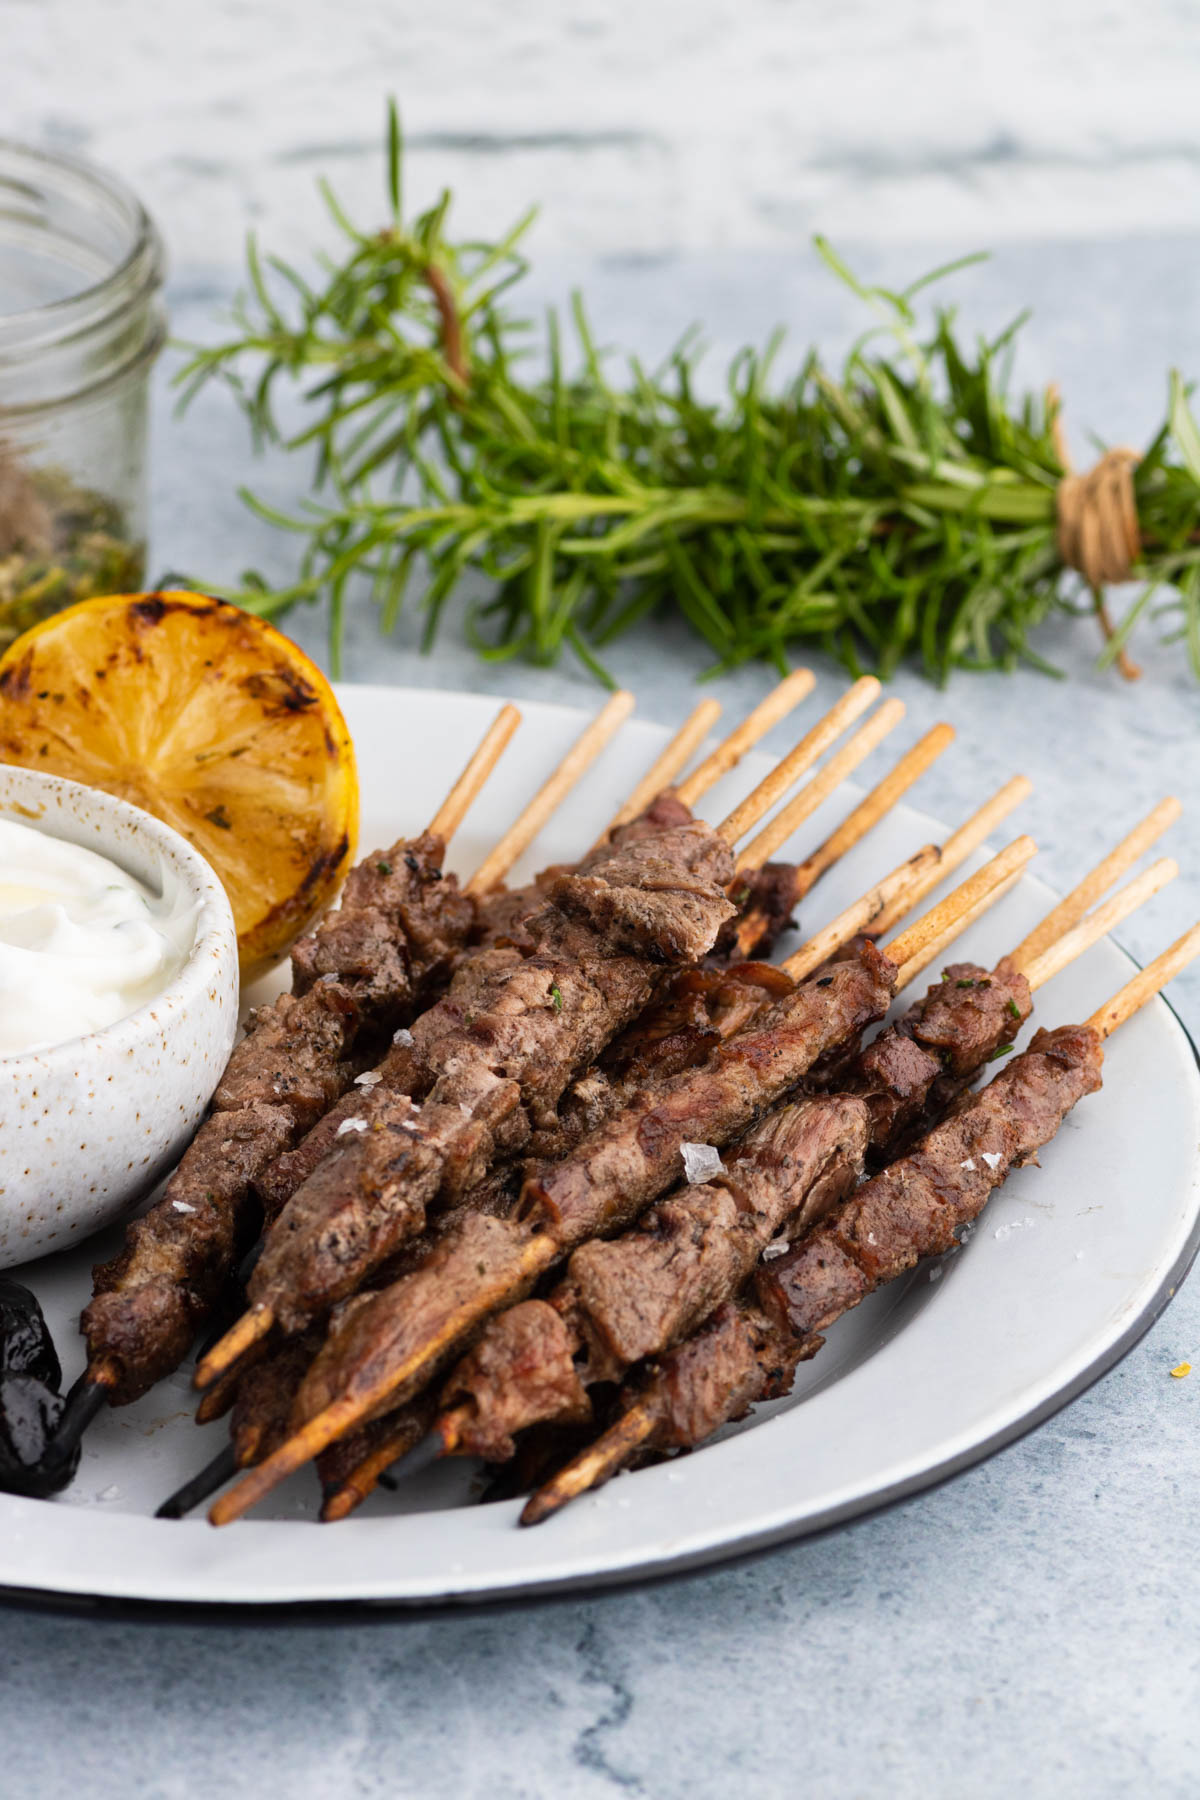 Grilled Spiedini skewers on a white plate with grilled half lemon and dipping sauce